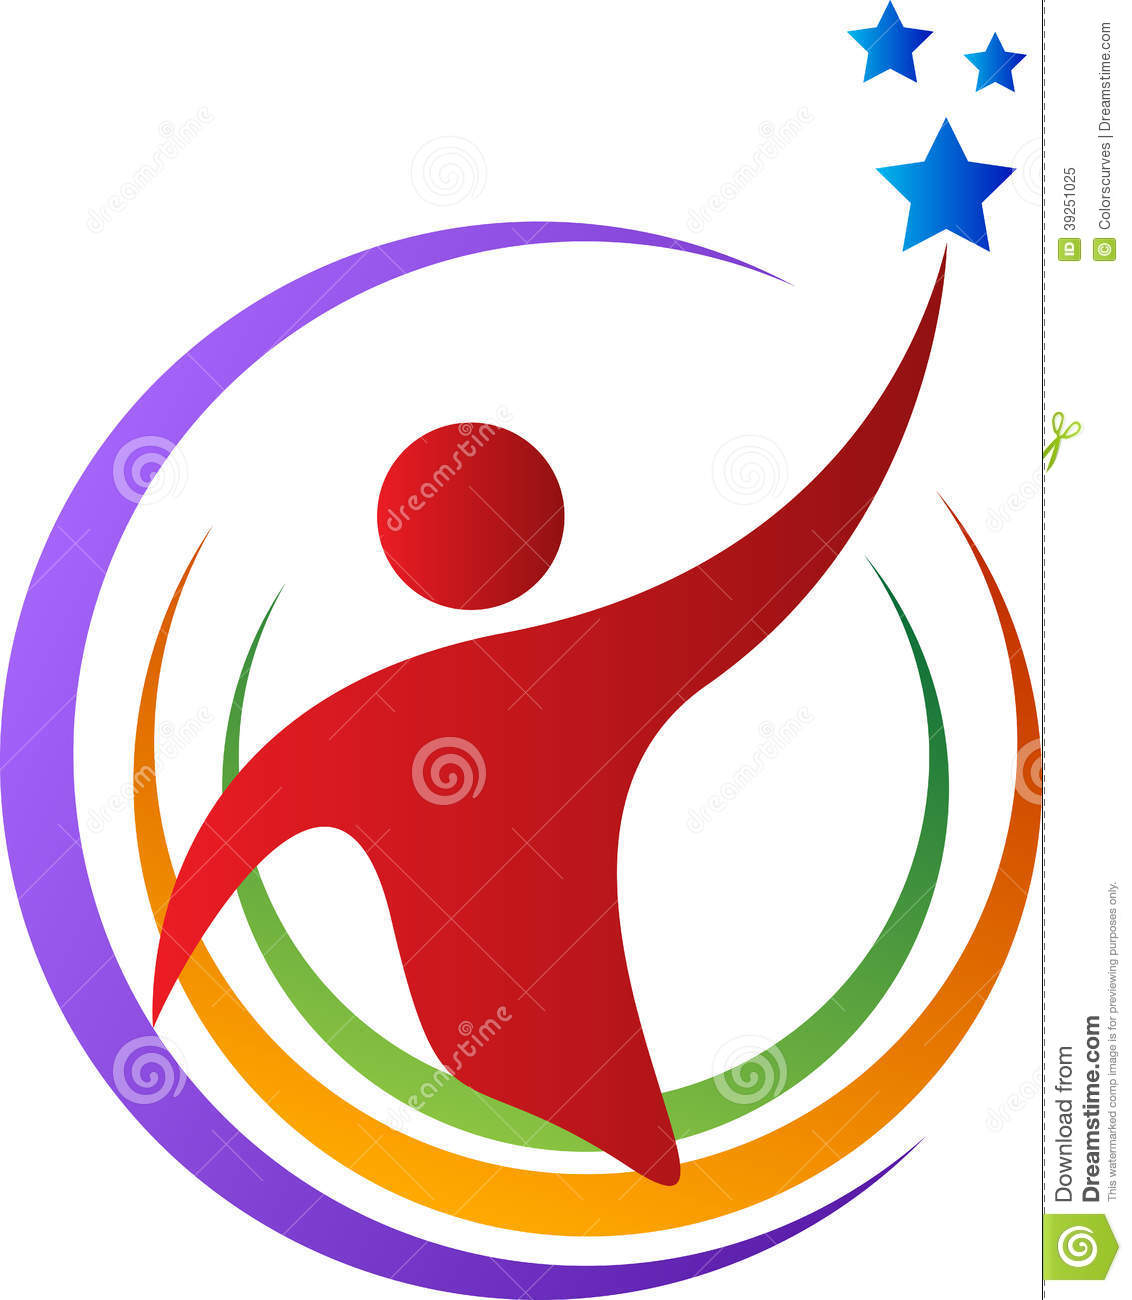 Person Reaching for the Stars Clip Art